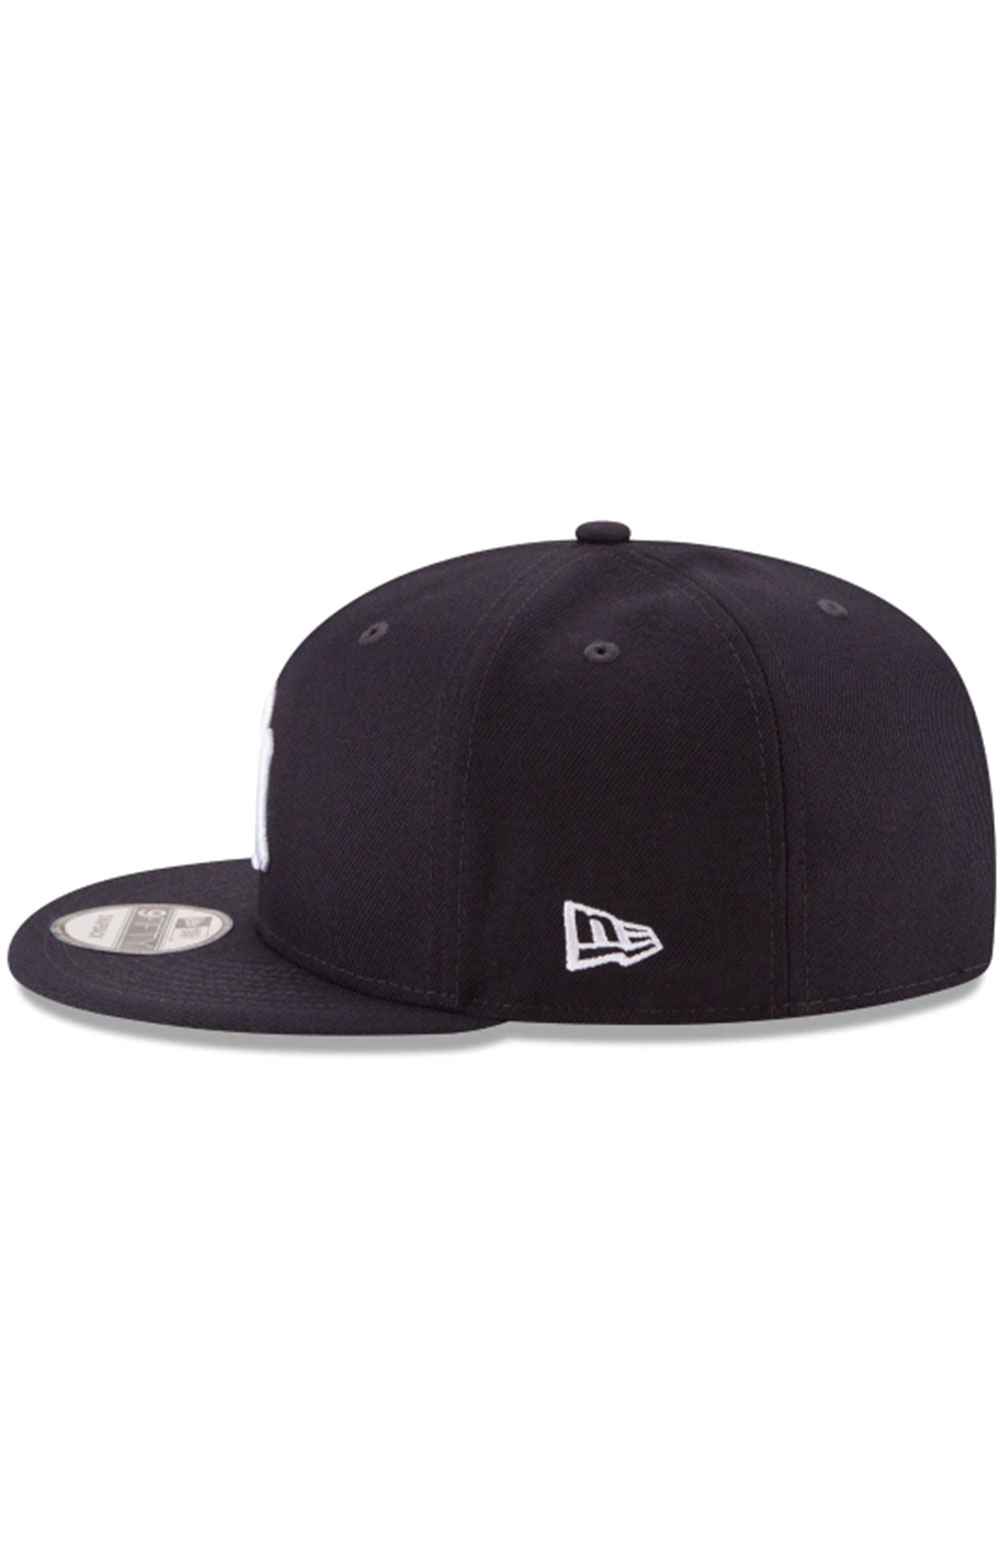 New York Yankees Team Color Basic 9Fifty Snap-Back Hat  6